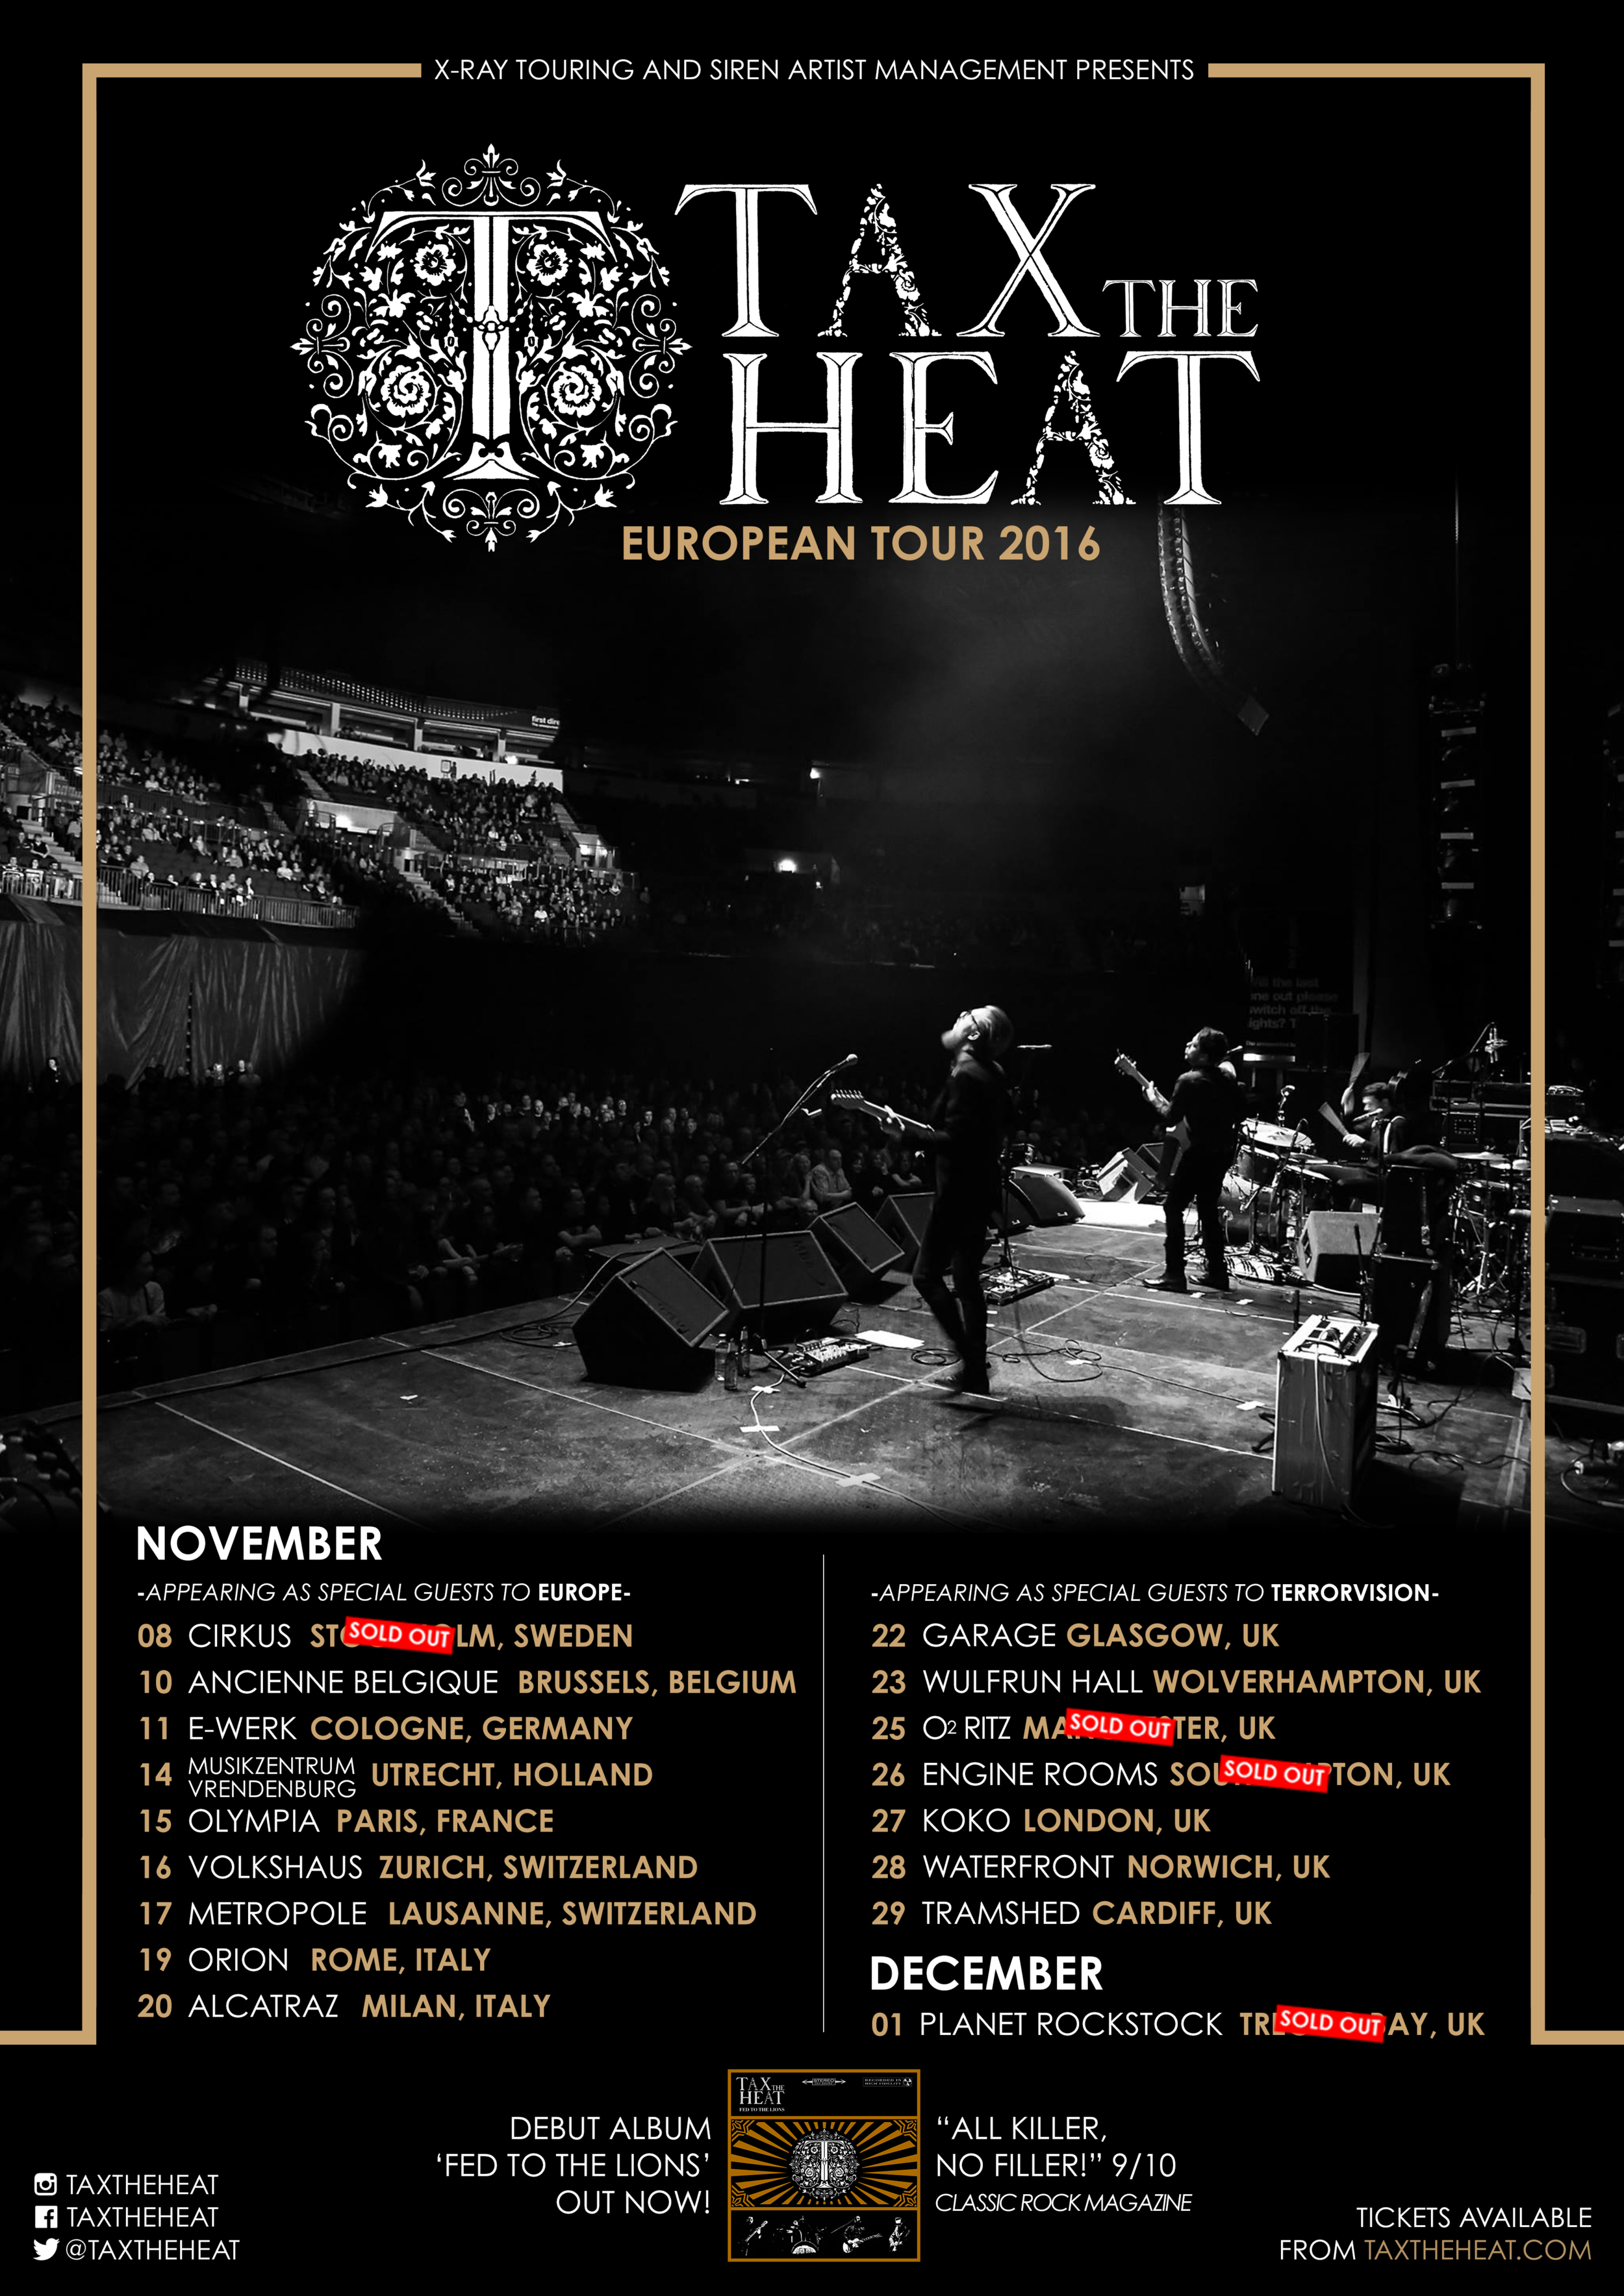 Tax-The-Heat-European-Tour-2016-Poster